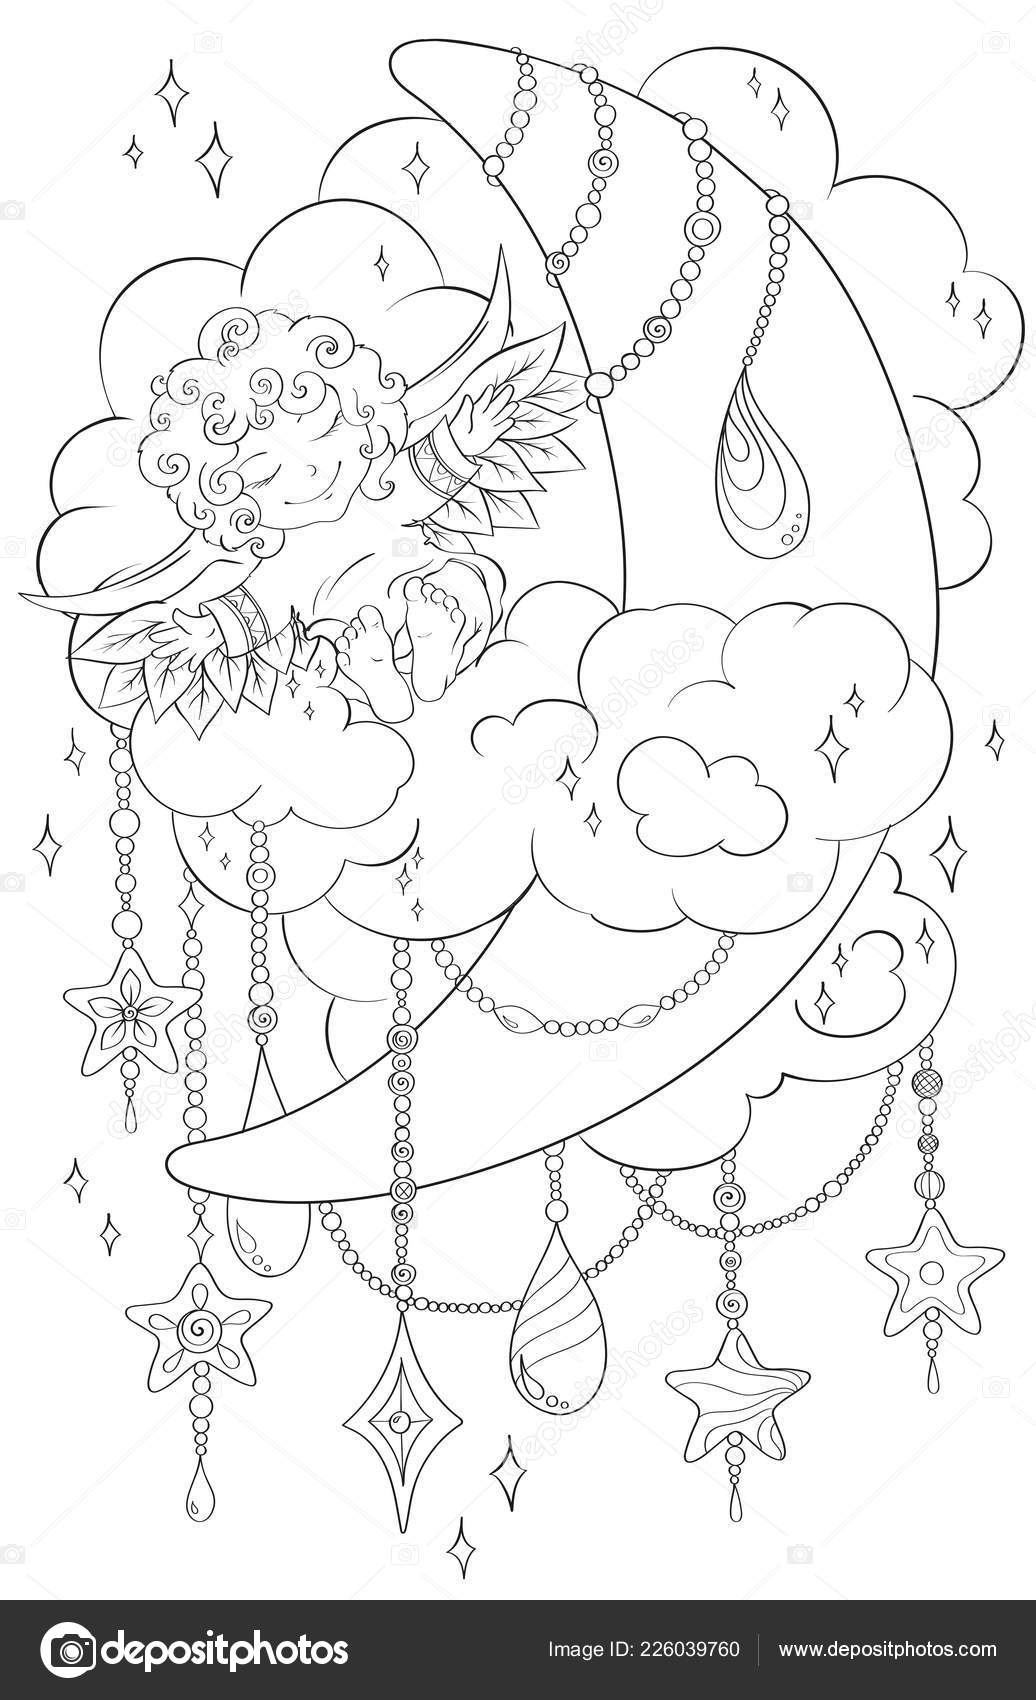 depositphotos stock illustration coloring page for adult kids